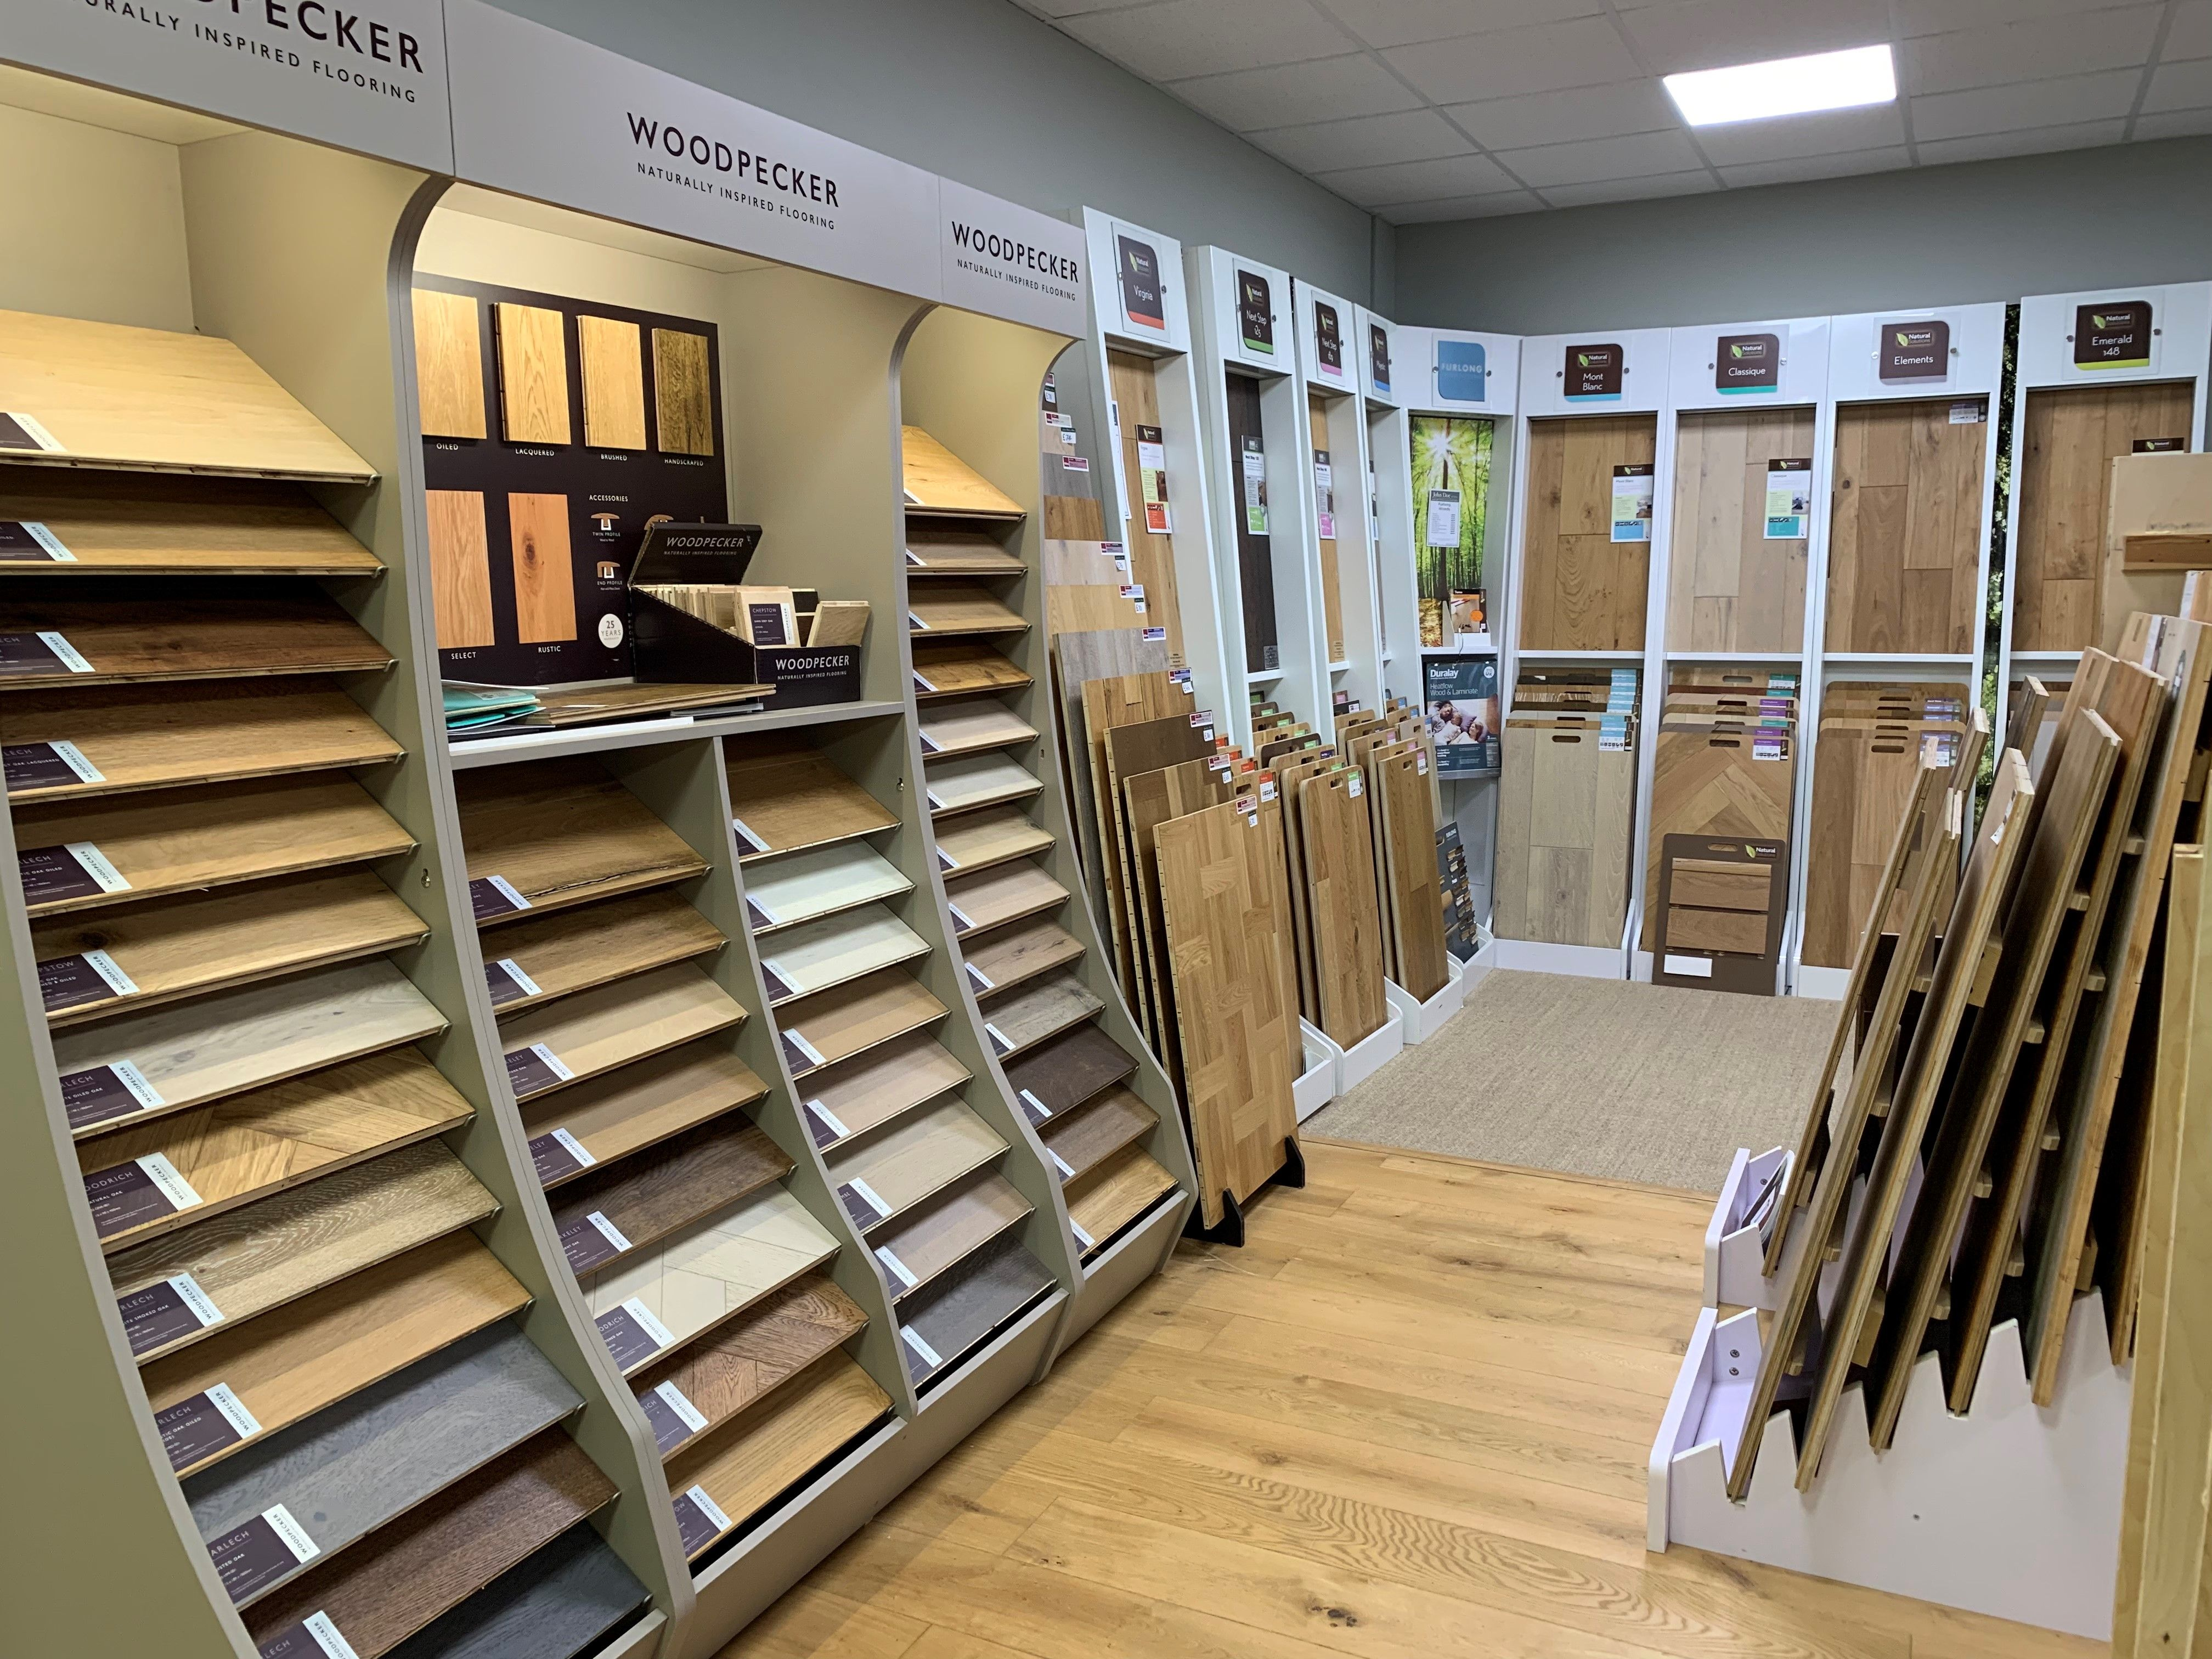 We Have A Great Selection Of Wood Flooring Here At John Doe Of Diss Including A Fantastic Selection Of Local Furniture Stores Carpet Fitting Furniture Today